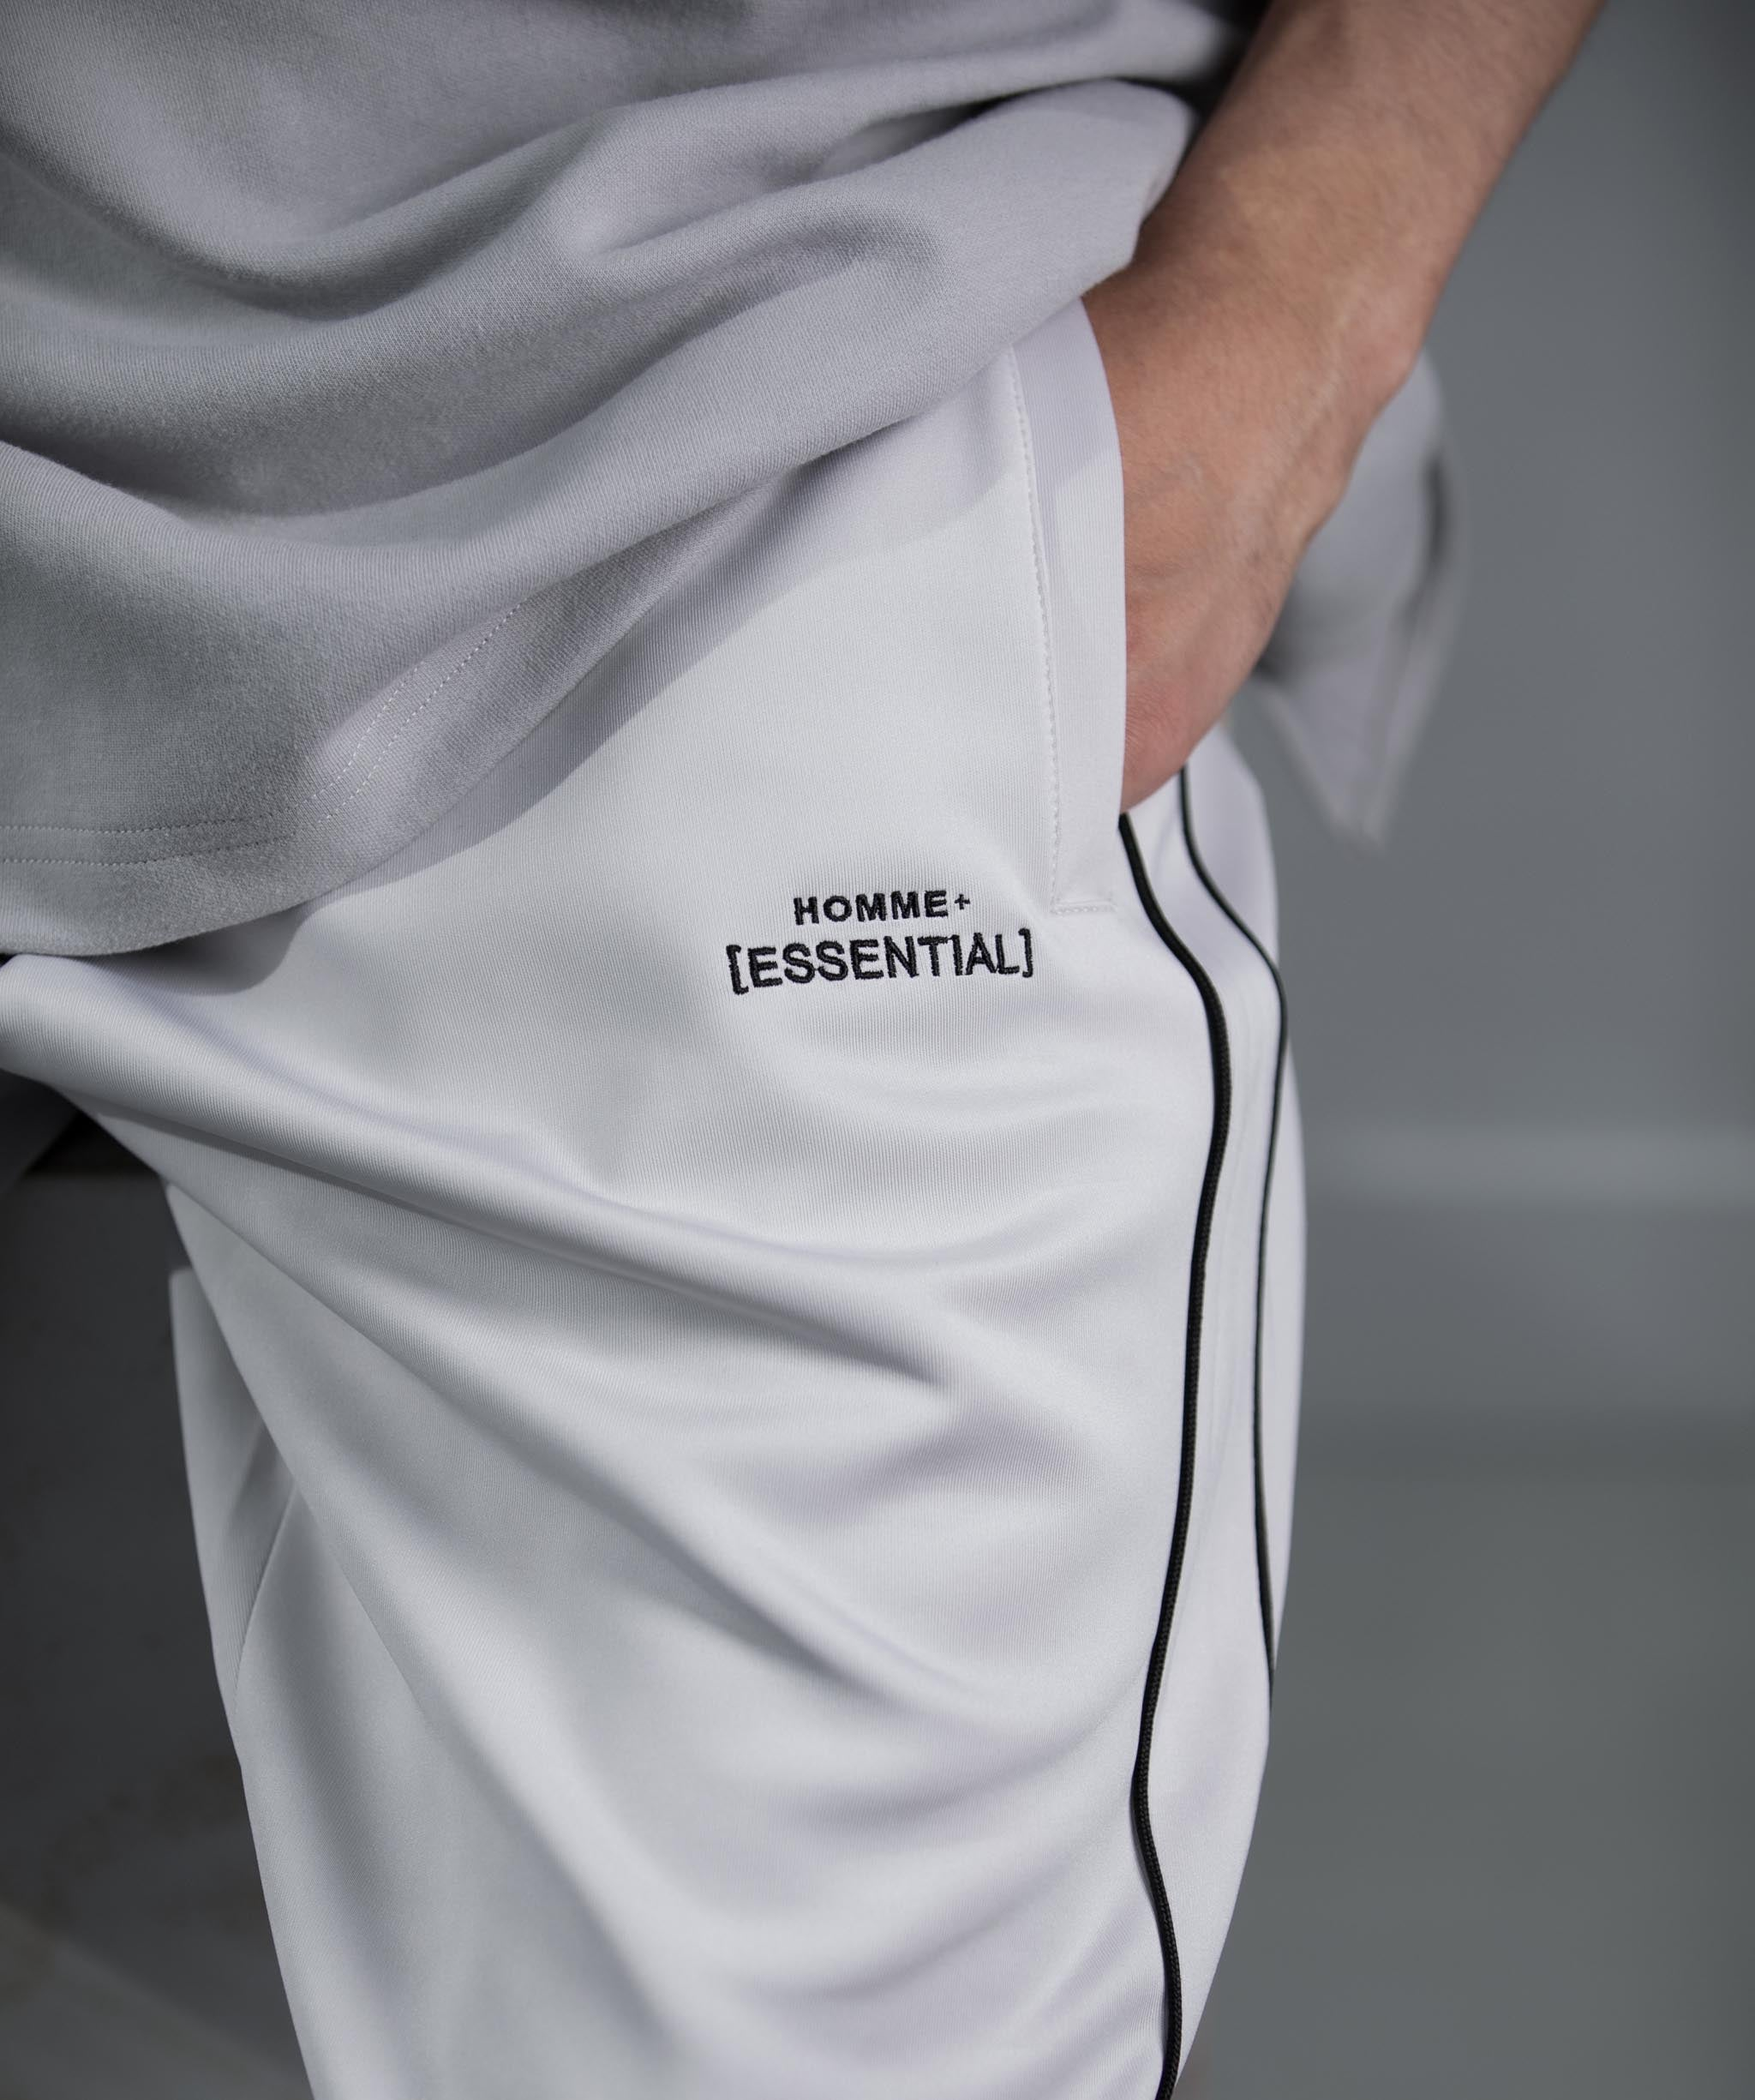 HOMME+ 'ESSENTIAL' Double Piped Trackpants - 1